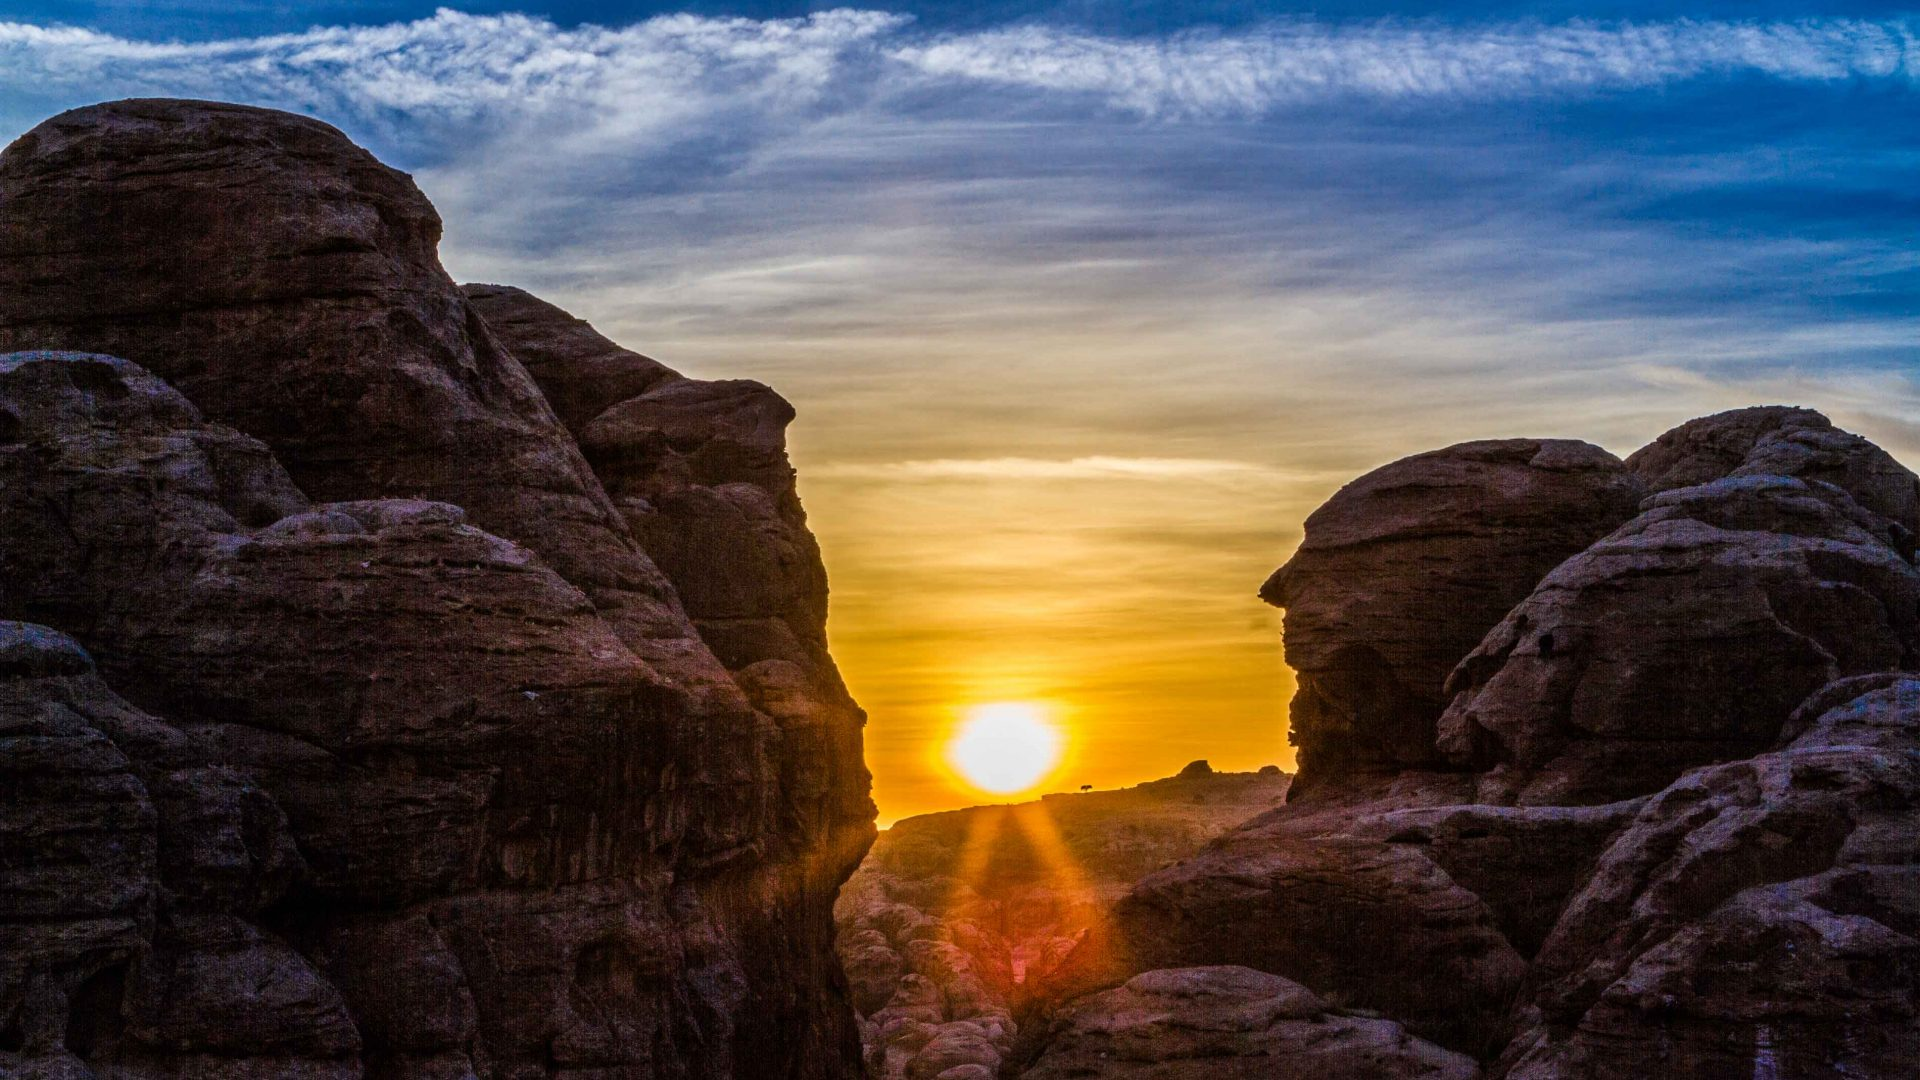 Sunset along the Jordan Trail from Little Petra (also known as Siq al-Barid) to Petra.